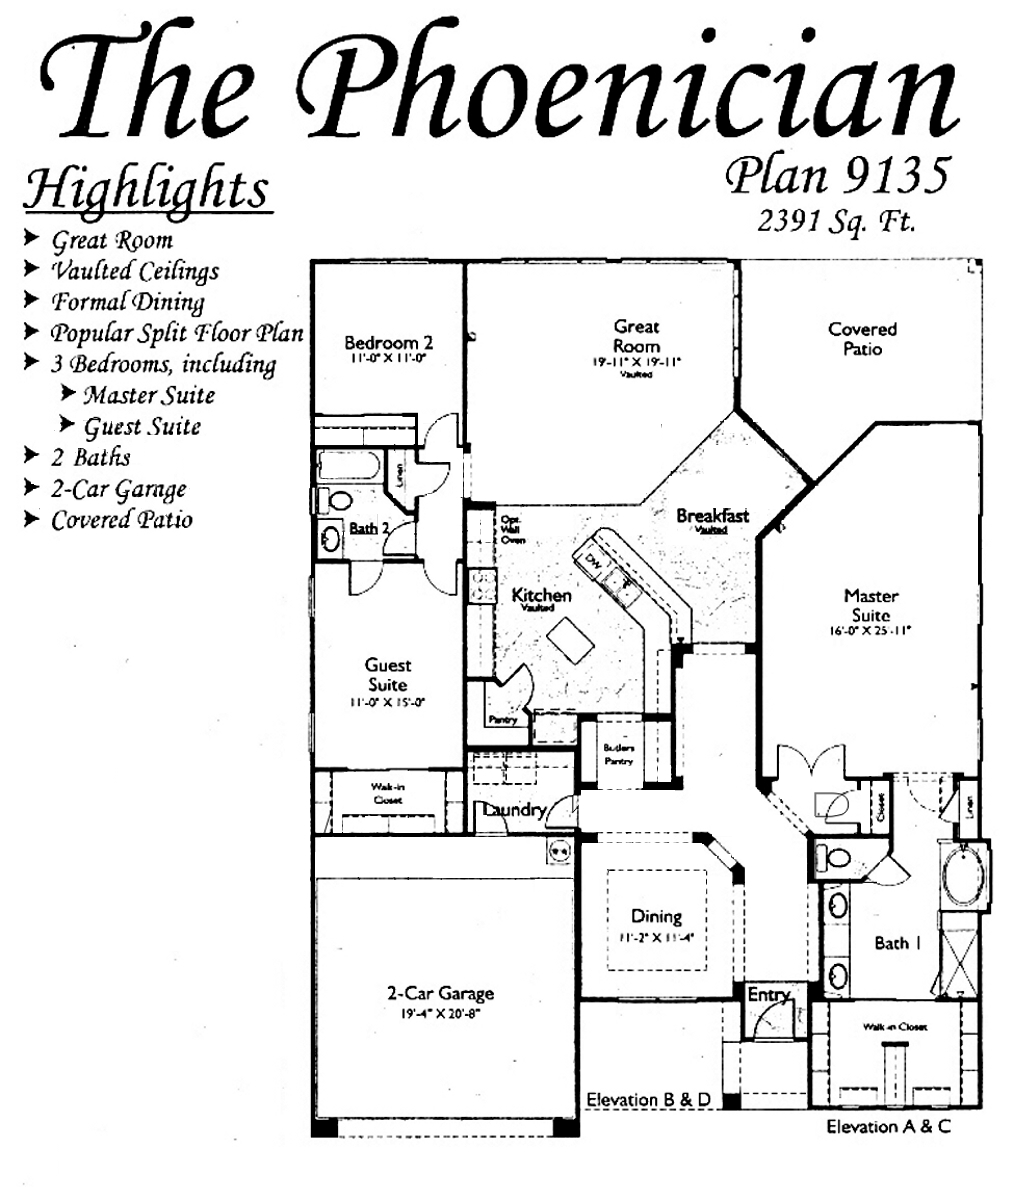 Phoenician Floorplans in Arizona Traditions